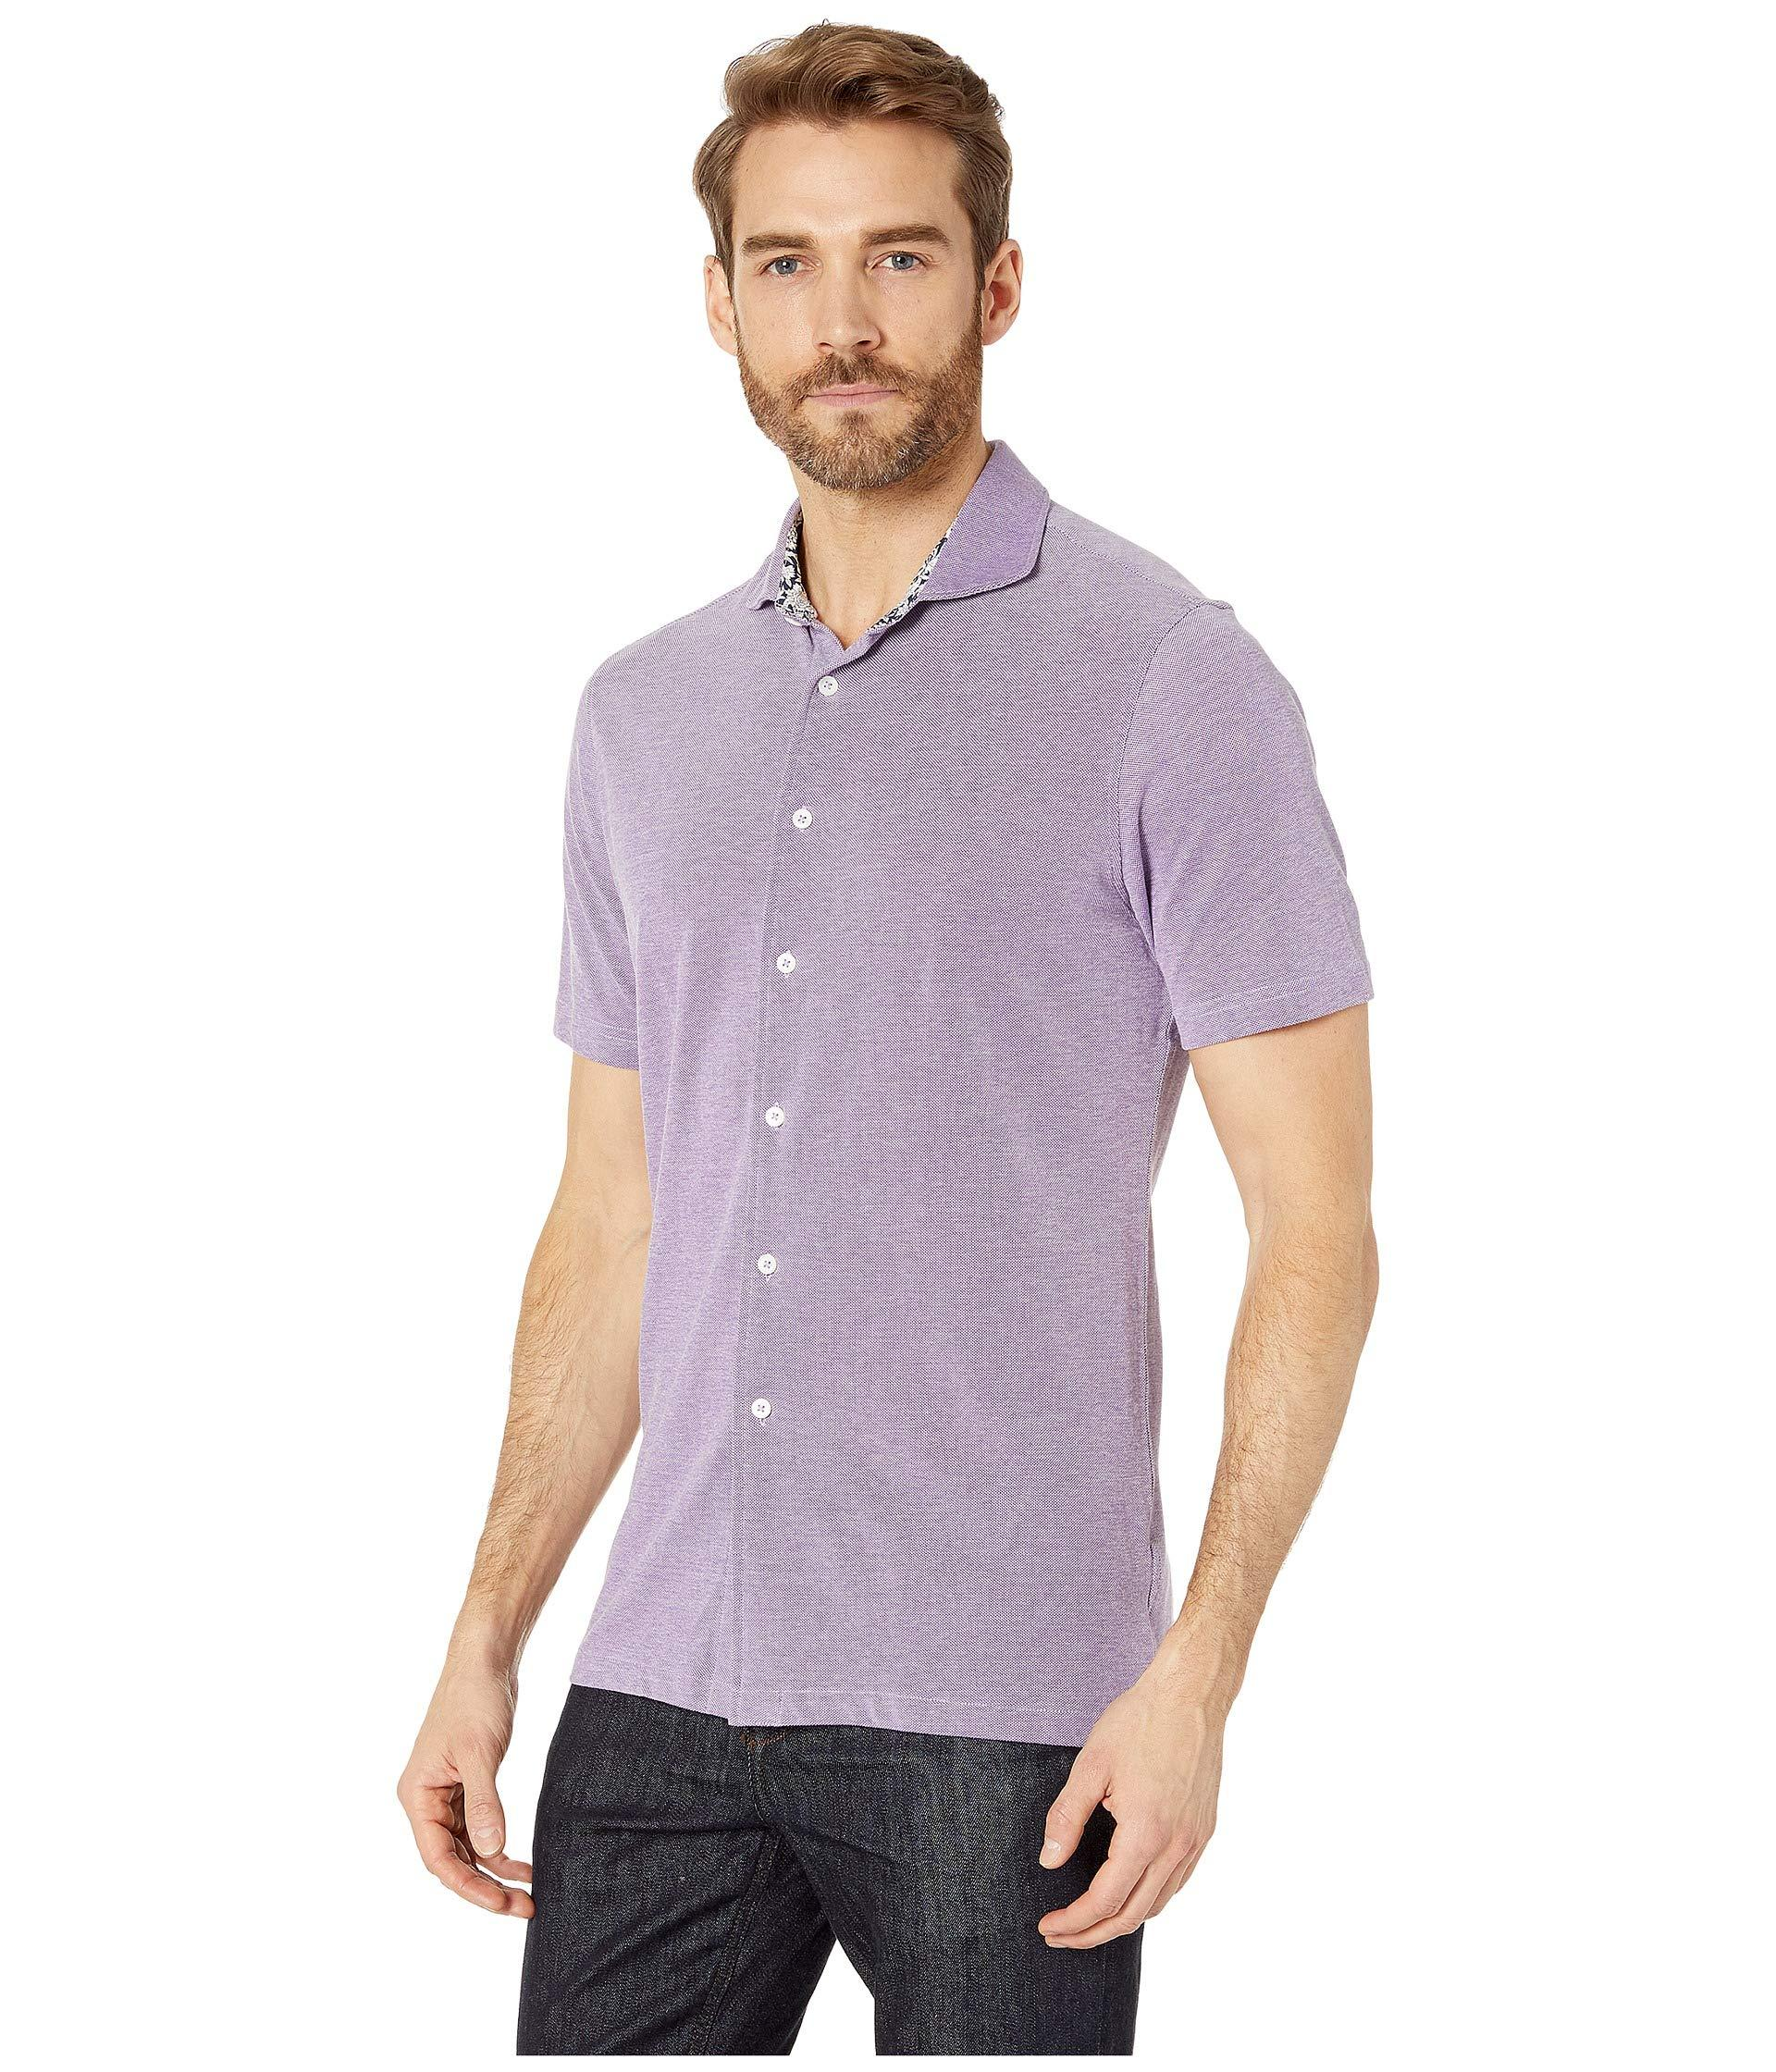 43f2a7992ba87 Lyst - Bugatchi Julian Short Sleeve Button-up Shirt (mint) Men s Short  Sleeve Button Up in Purple for Men